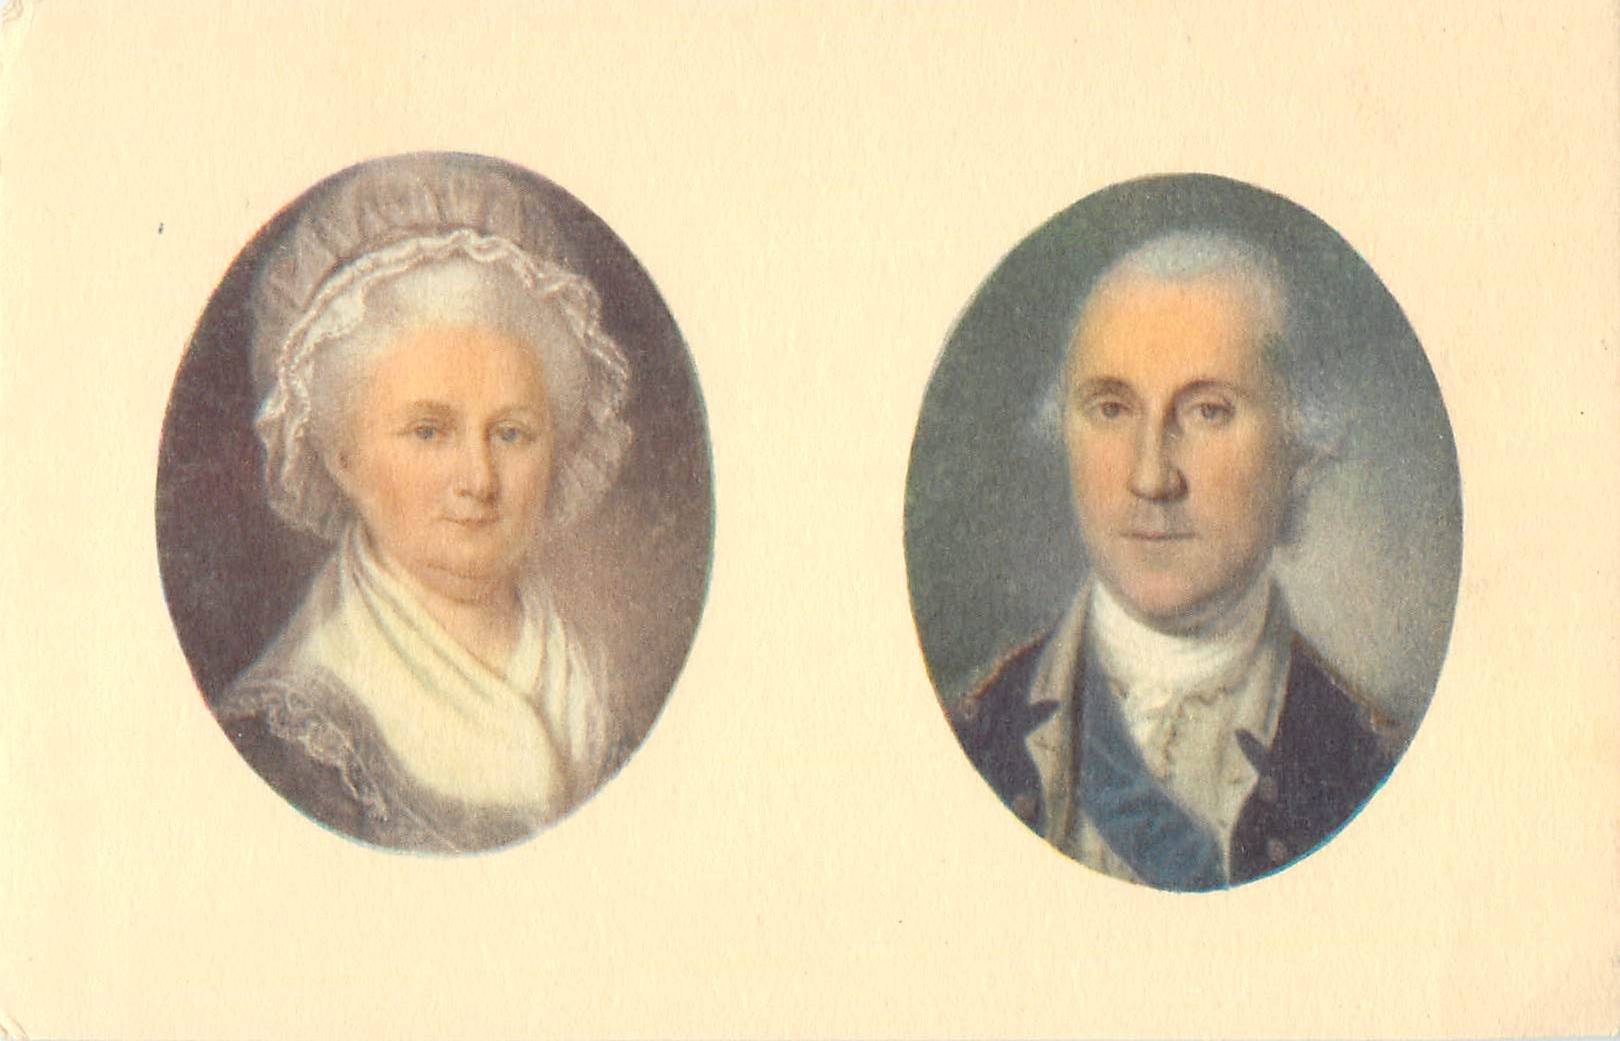 """Portraits of the Washingtons - By Charles Peale and James Peale"